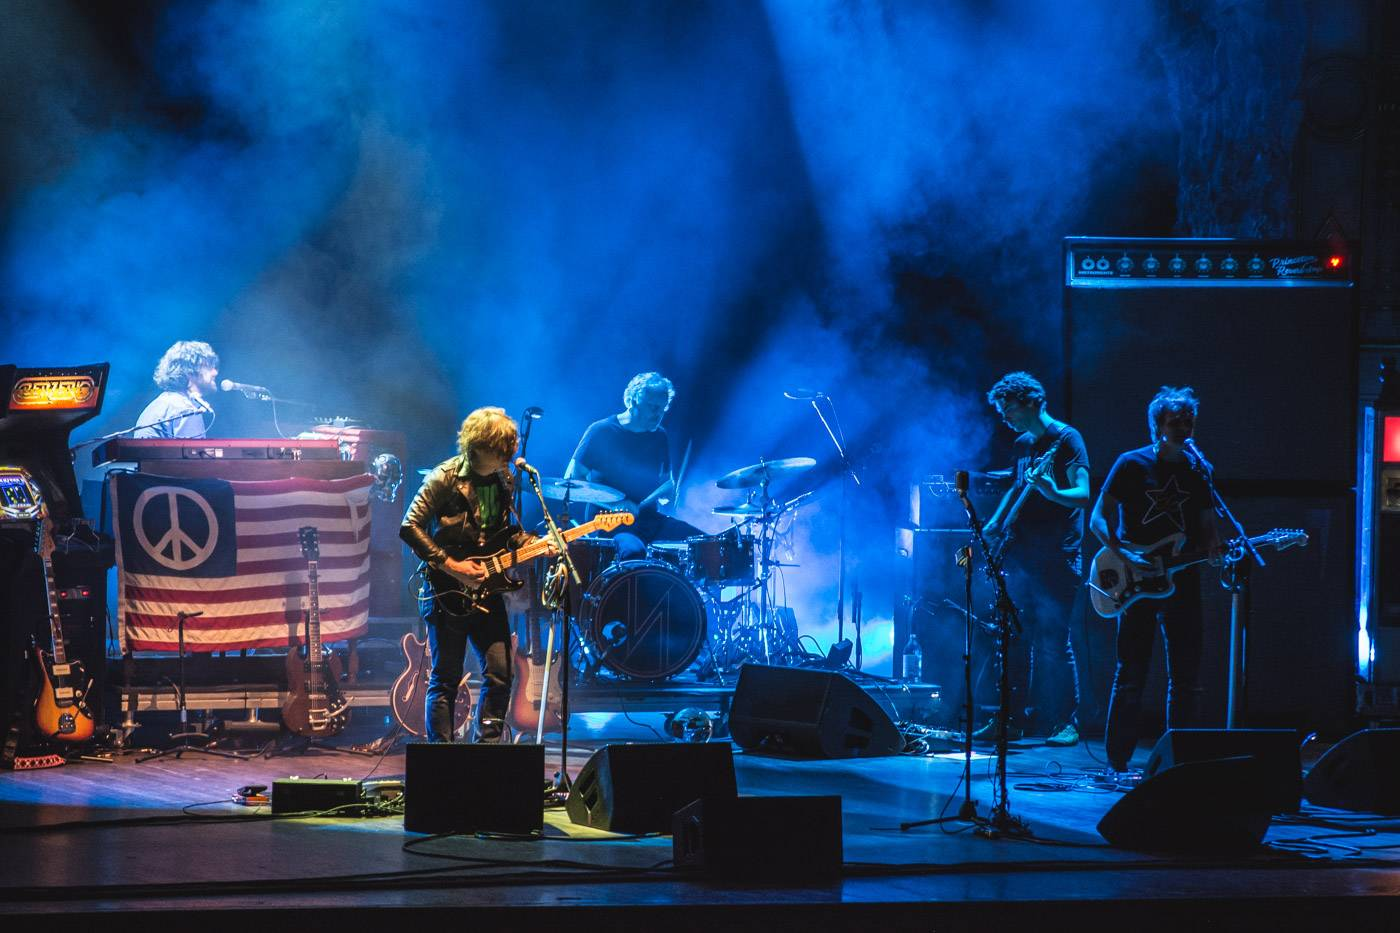 Ryan Adams at the Orpheum Theatre, Vancouver, May 27 2015. Pavel Boiko photo.